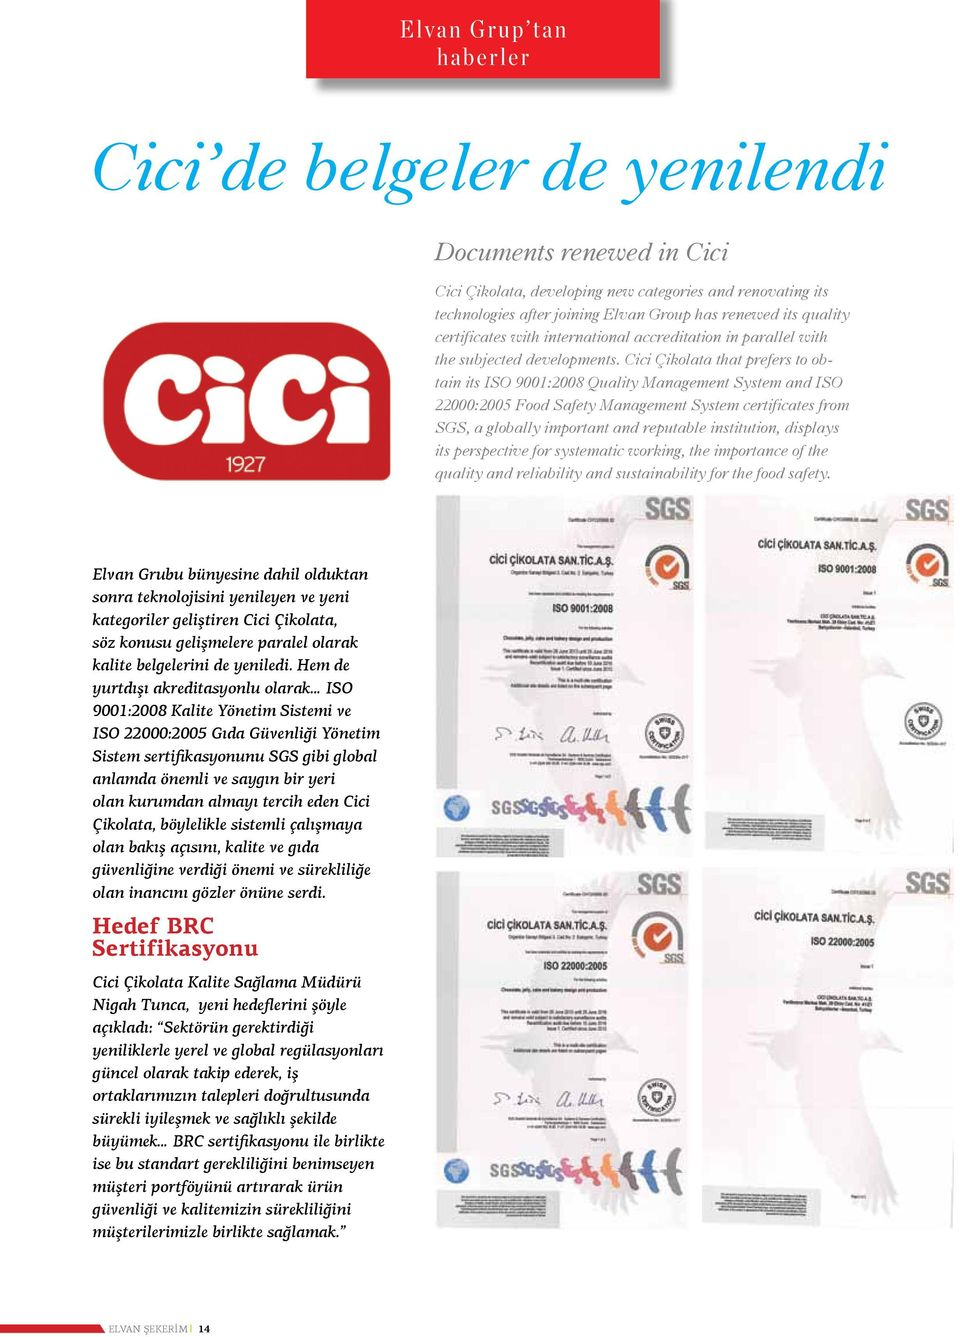 Cici Çikolata that prefers to obtain its ISO 9001:2008 Quality Management System and ISO 22000:2005 Food Safety Management System certificates from SGS, a globally important and reputable